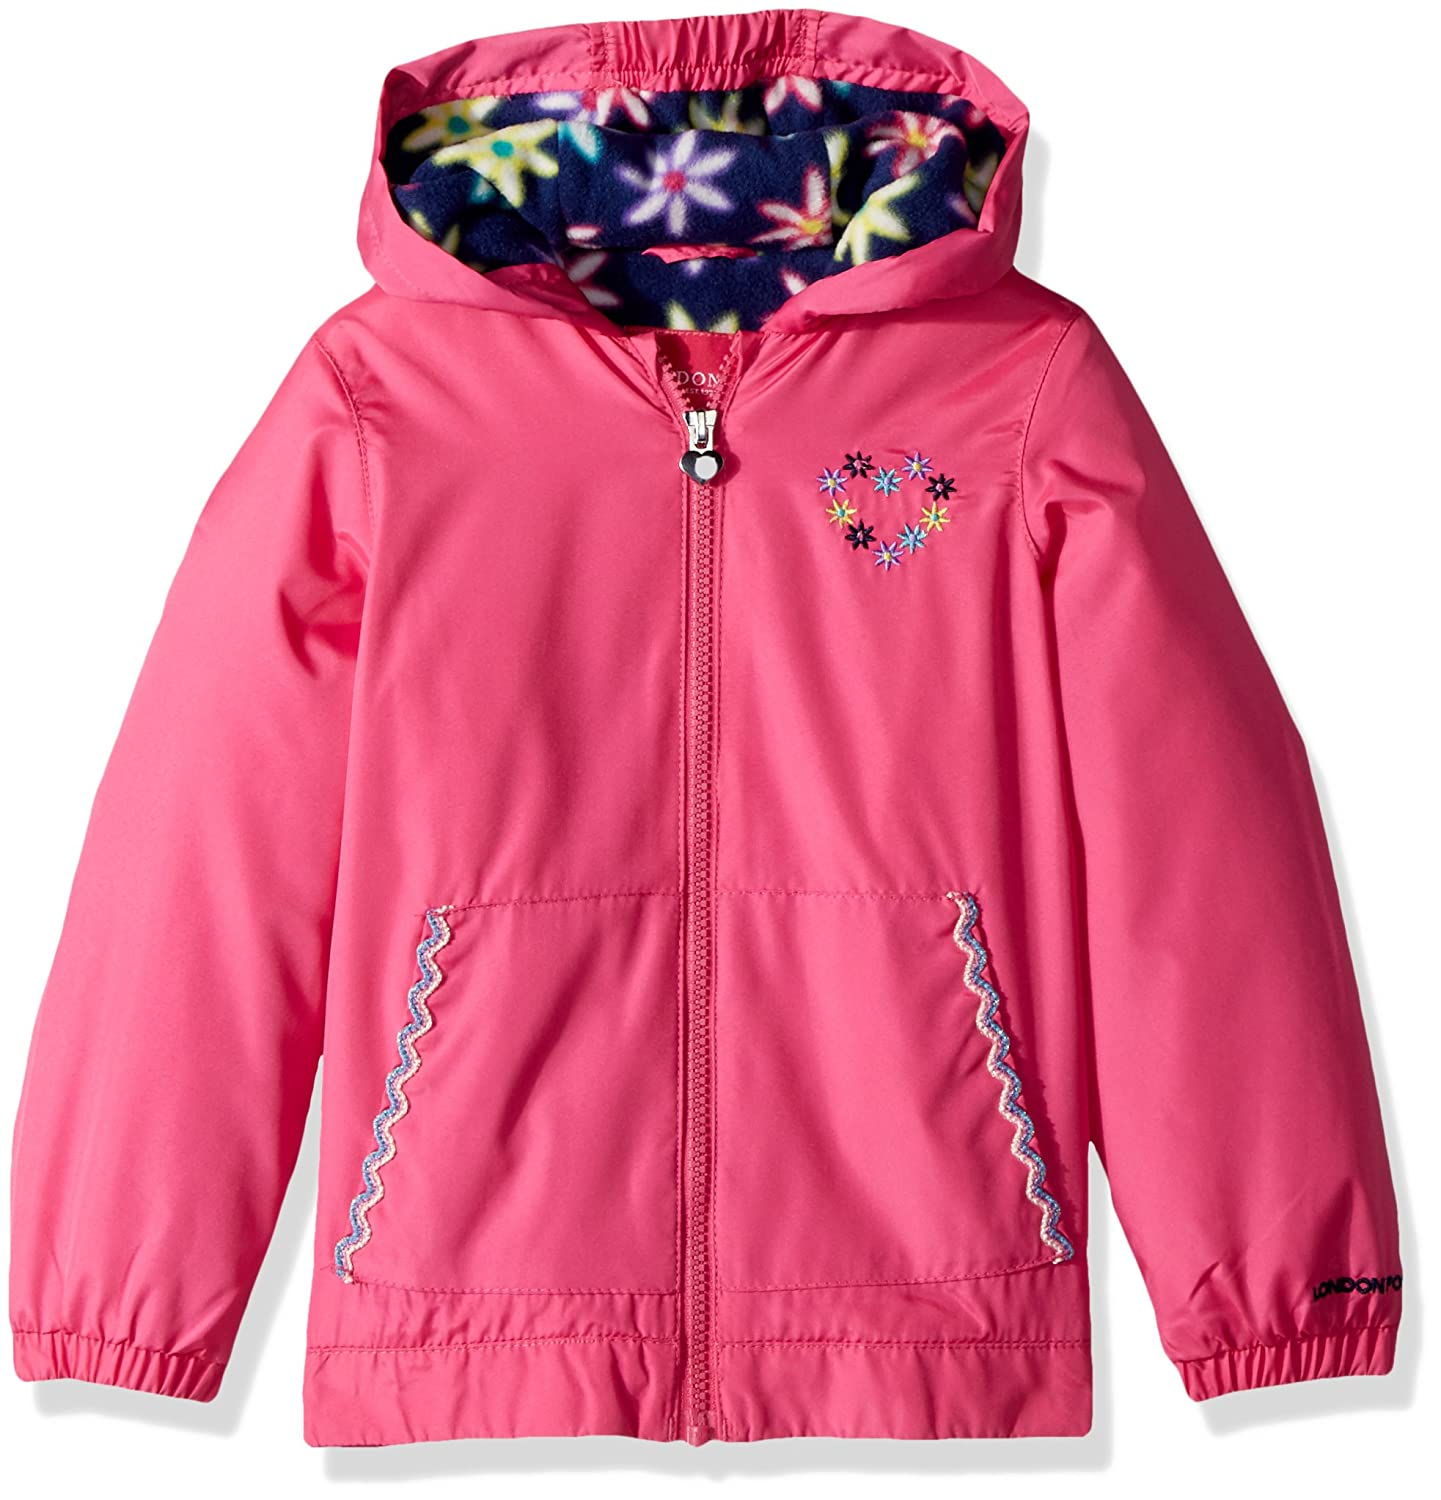 London Fog Girls Floral Printed Fleece Lined Jacket L116778-AN